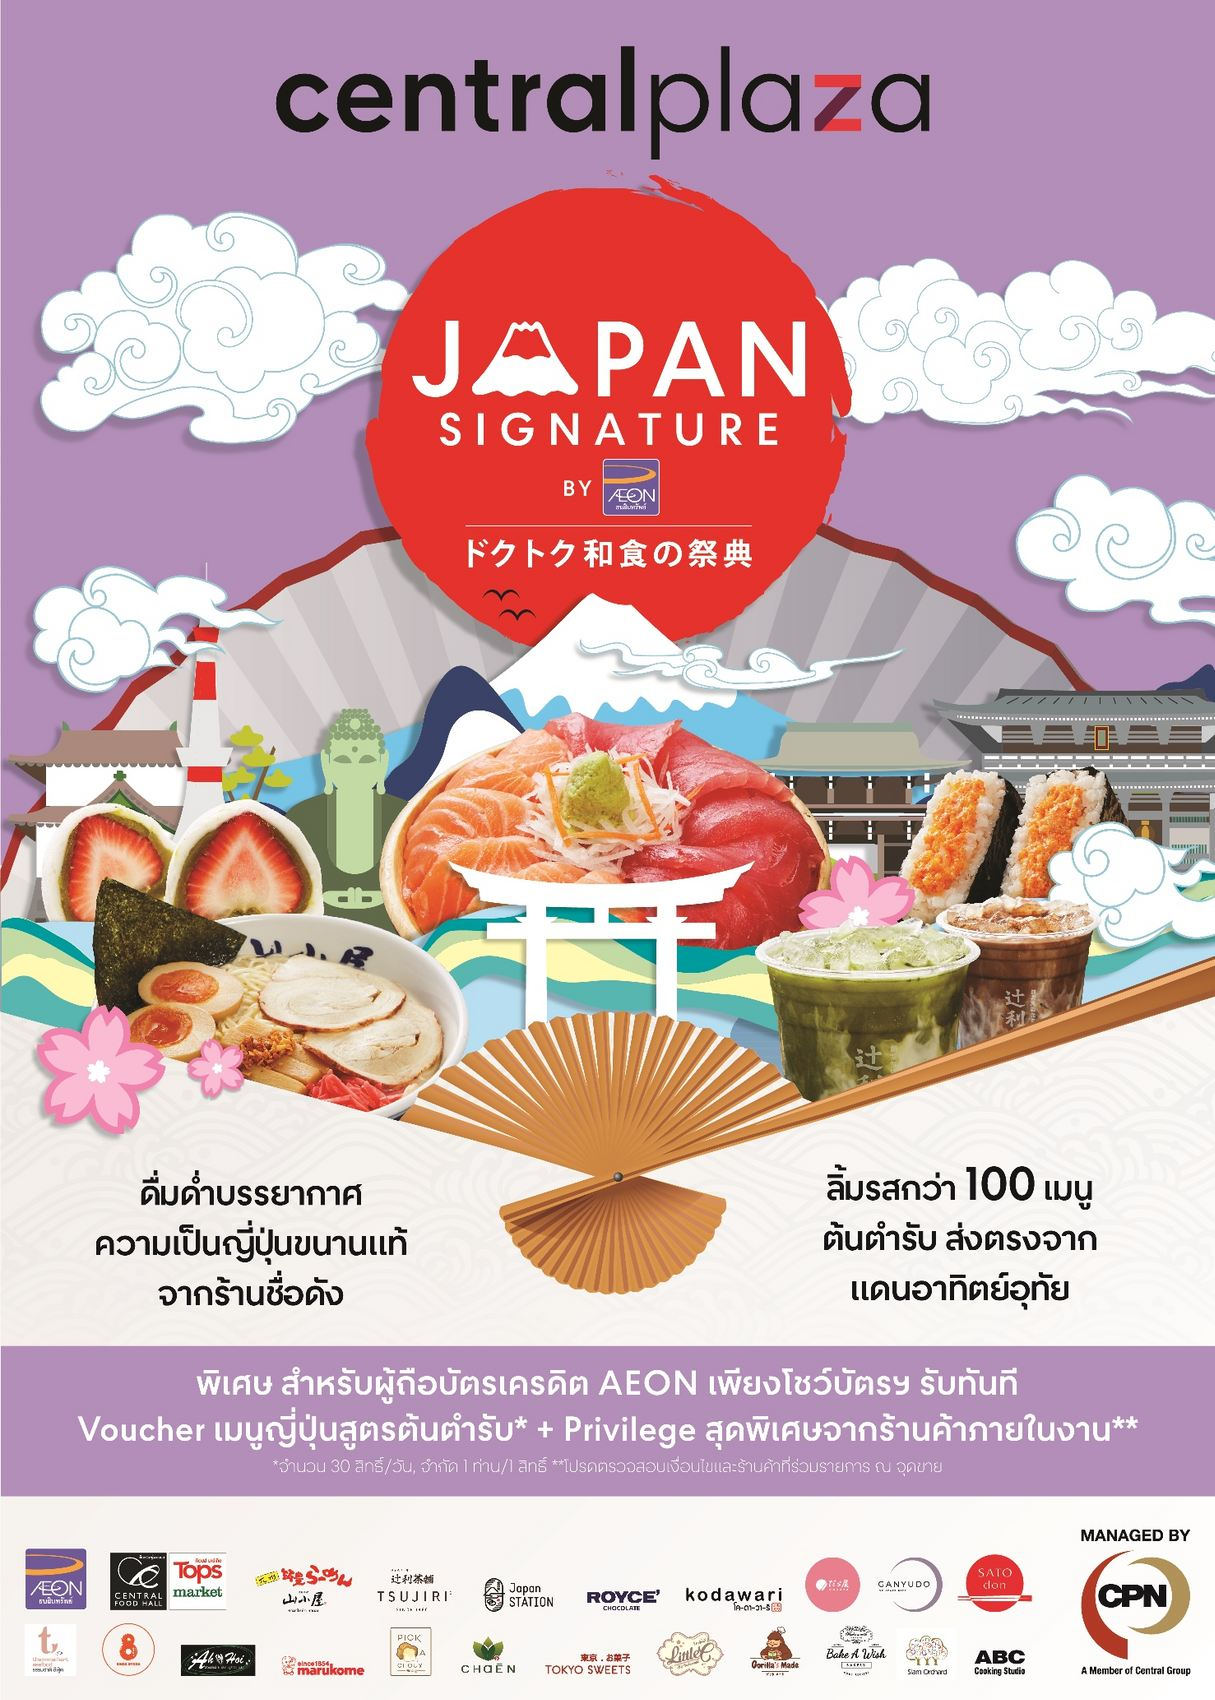 Japan Signature by AEON